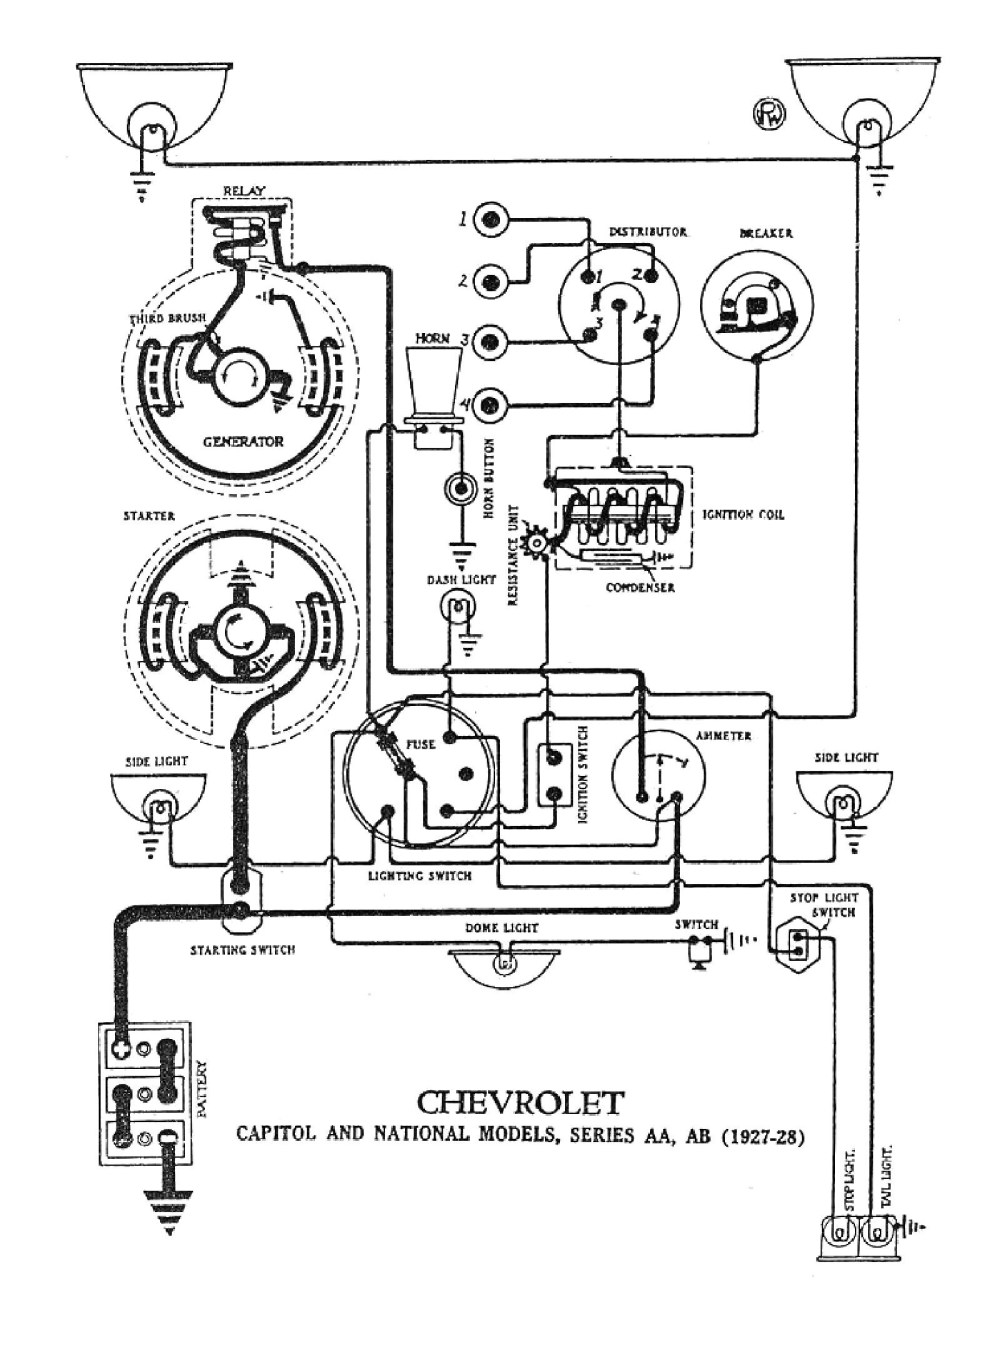 medium resolution of 1998 chevy s10 engine diagram wiring diagrams of 1998 chevy s10 engine diagram 5 7 vortec